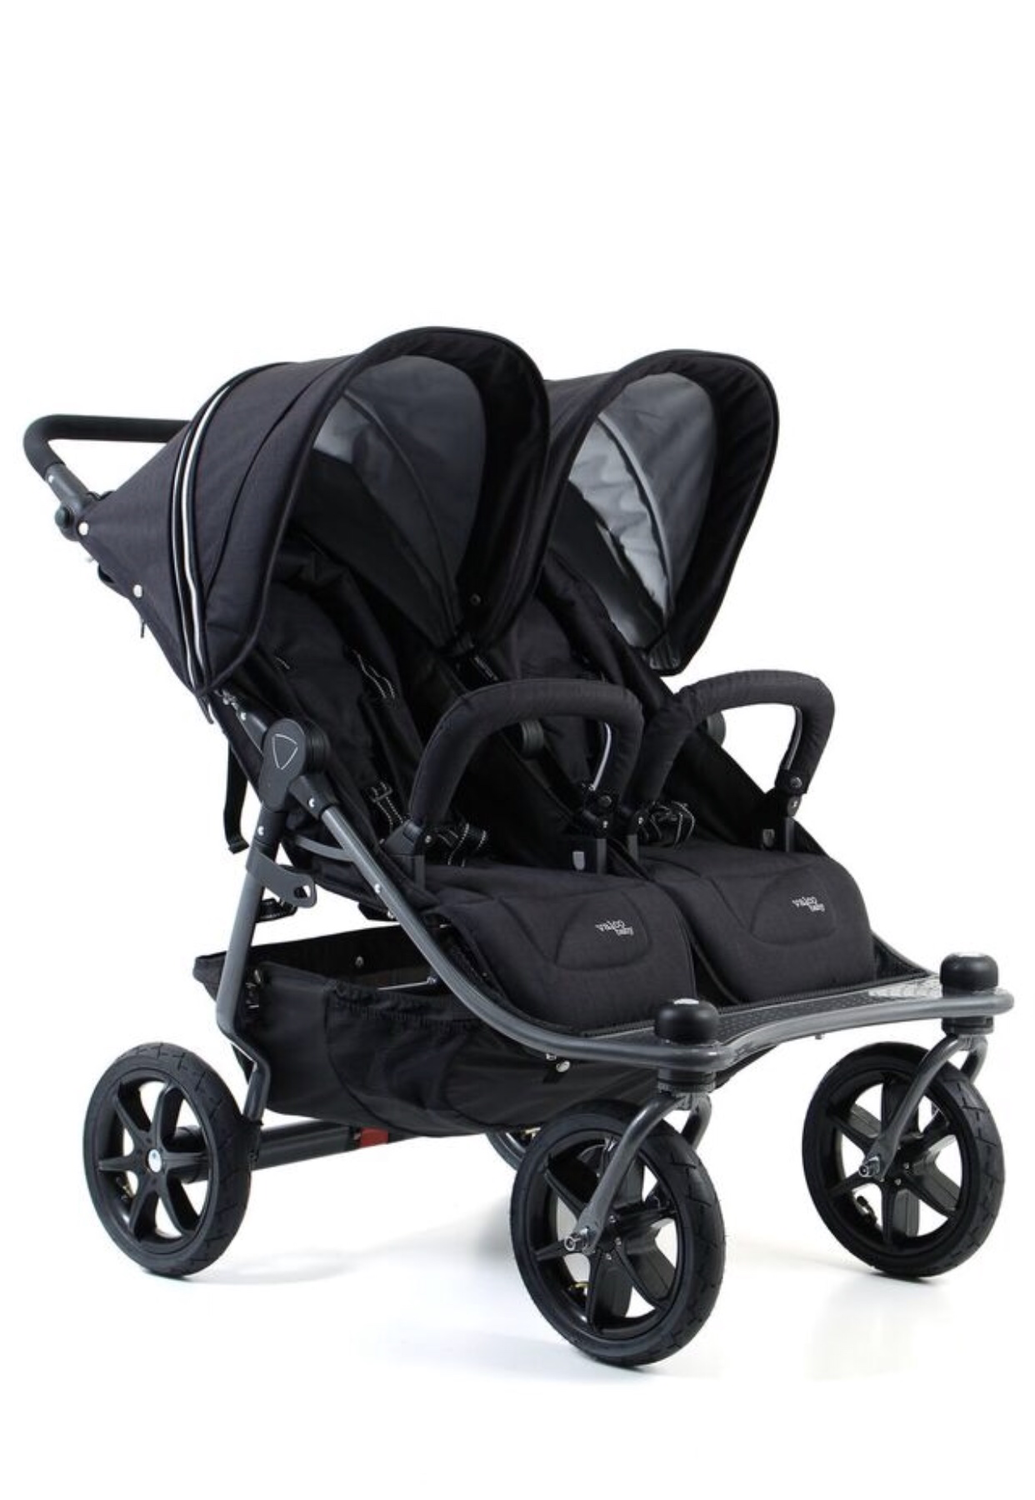 Test Model For Sale Valco Baby TriMode X Duo